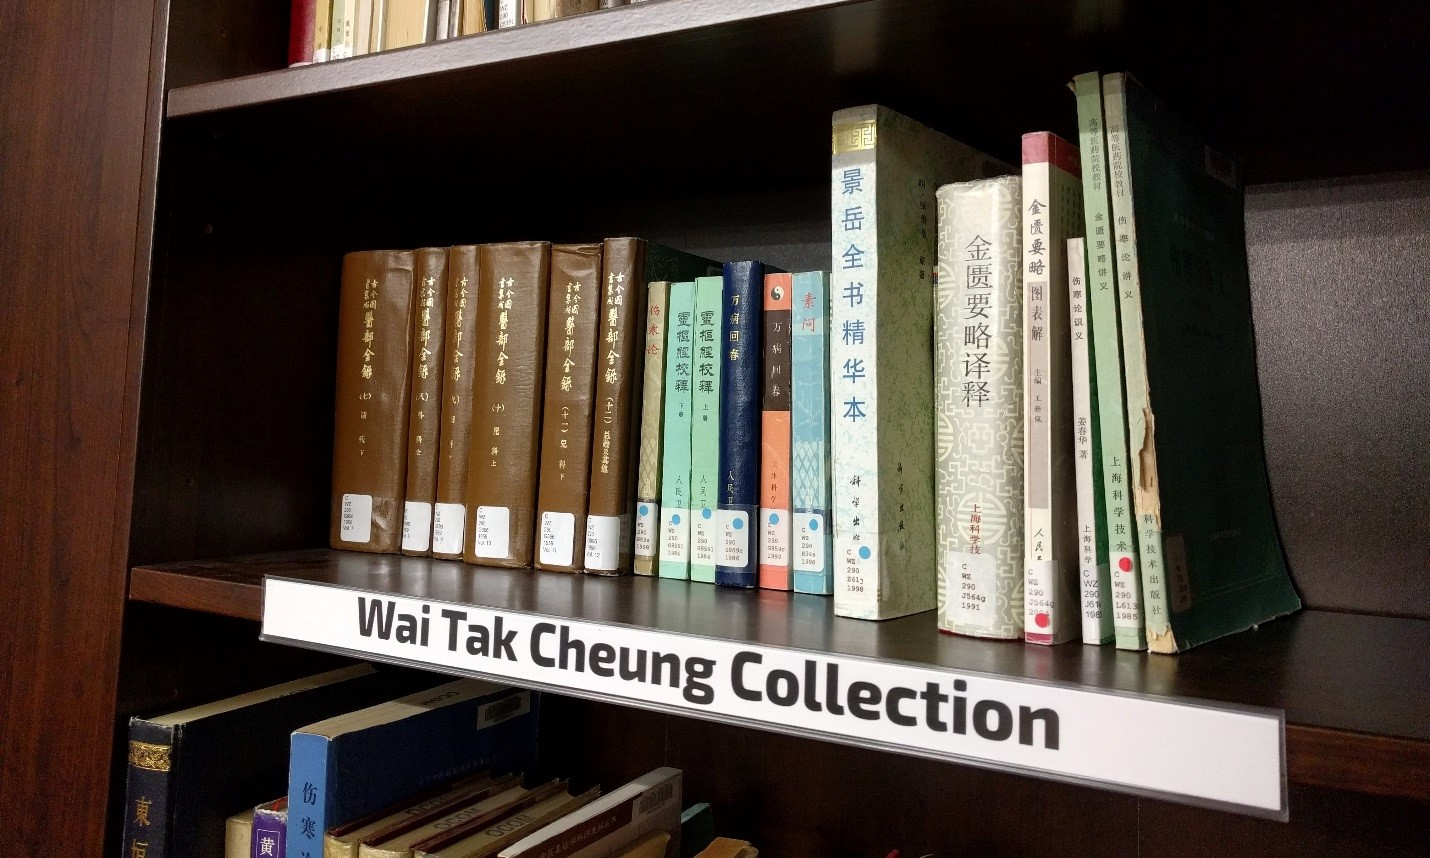 Photograph of Wai Tak Cheung Collection